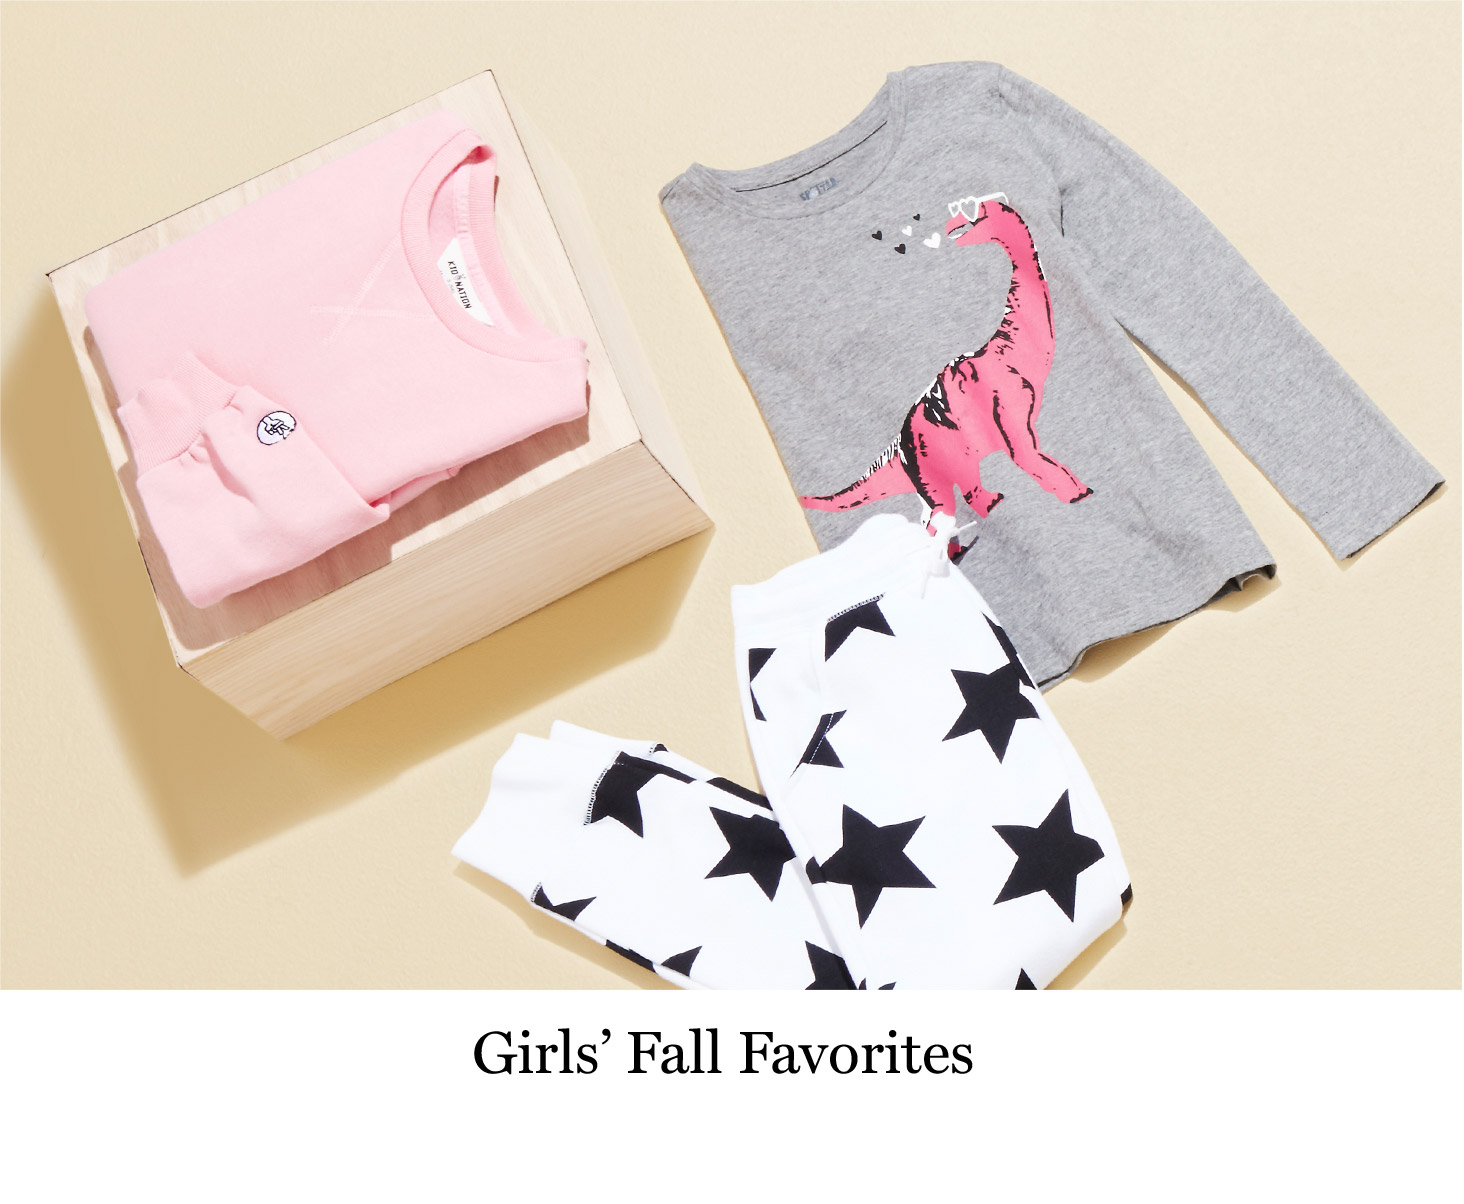 Girls' Fall Favorites